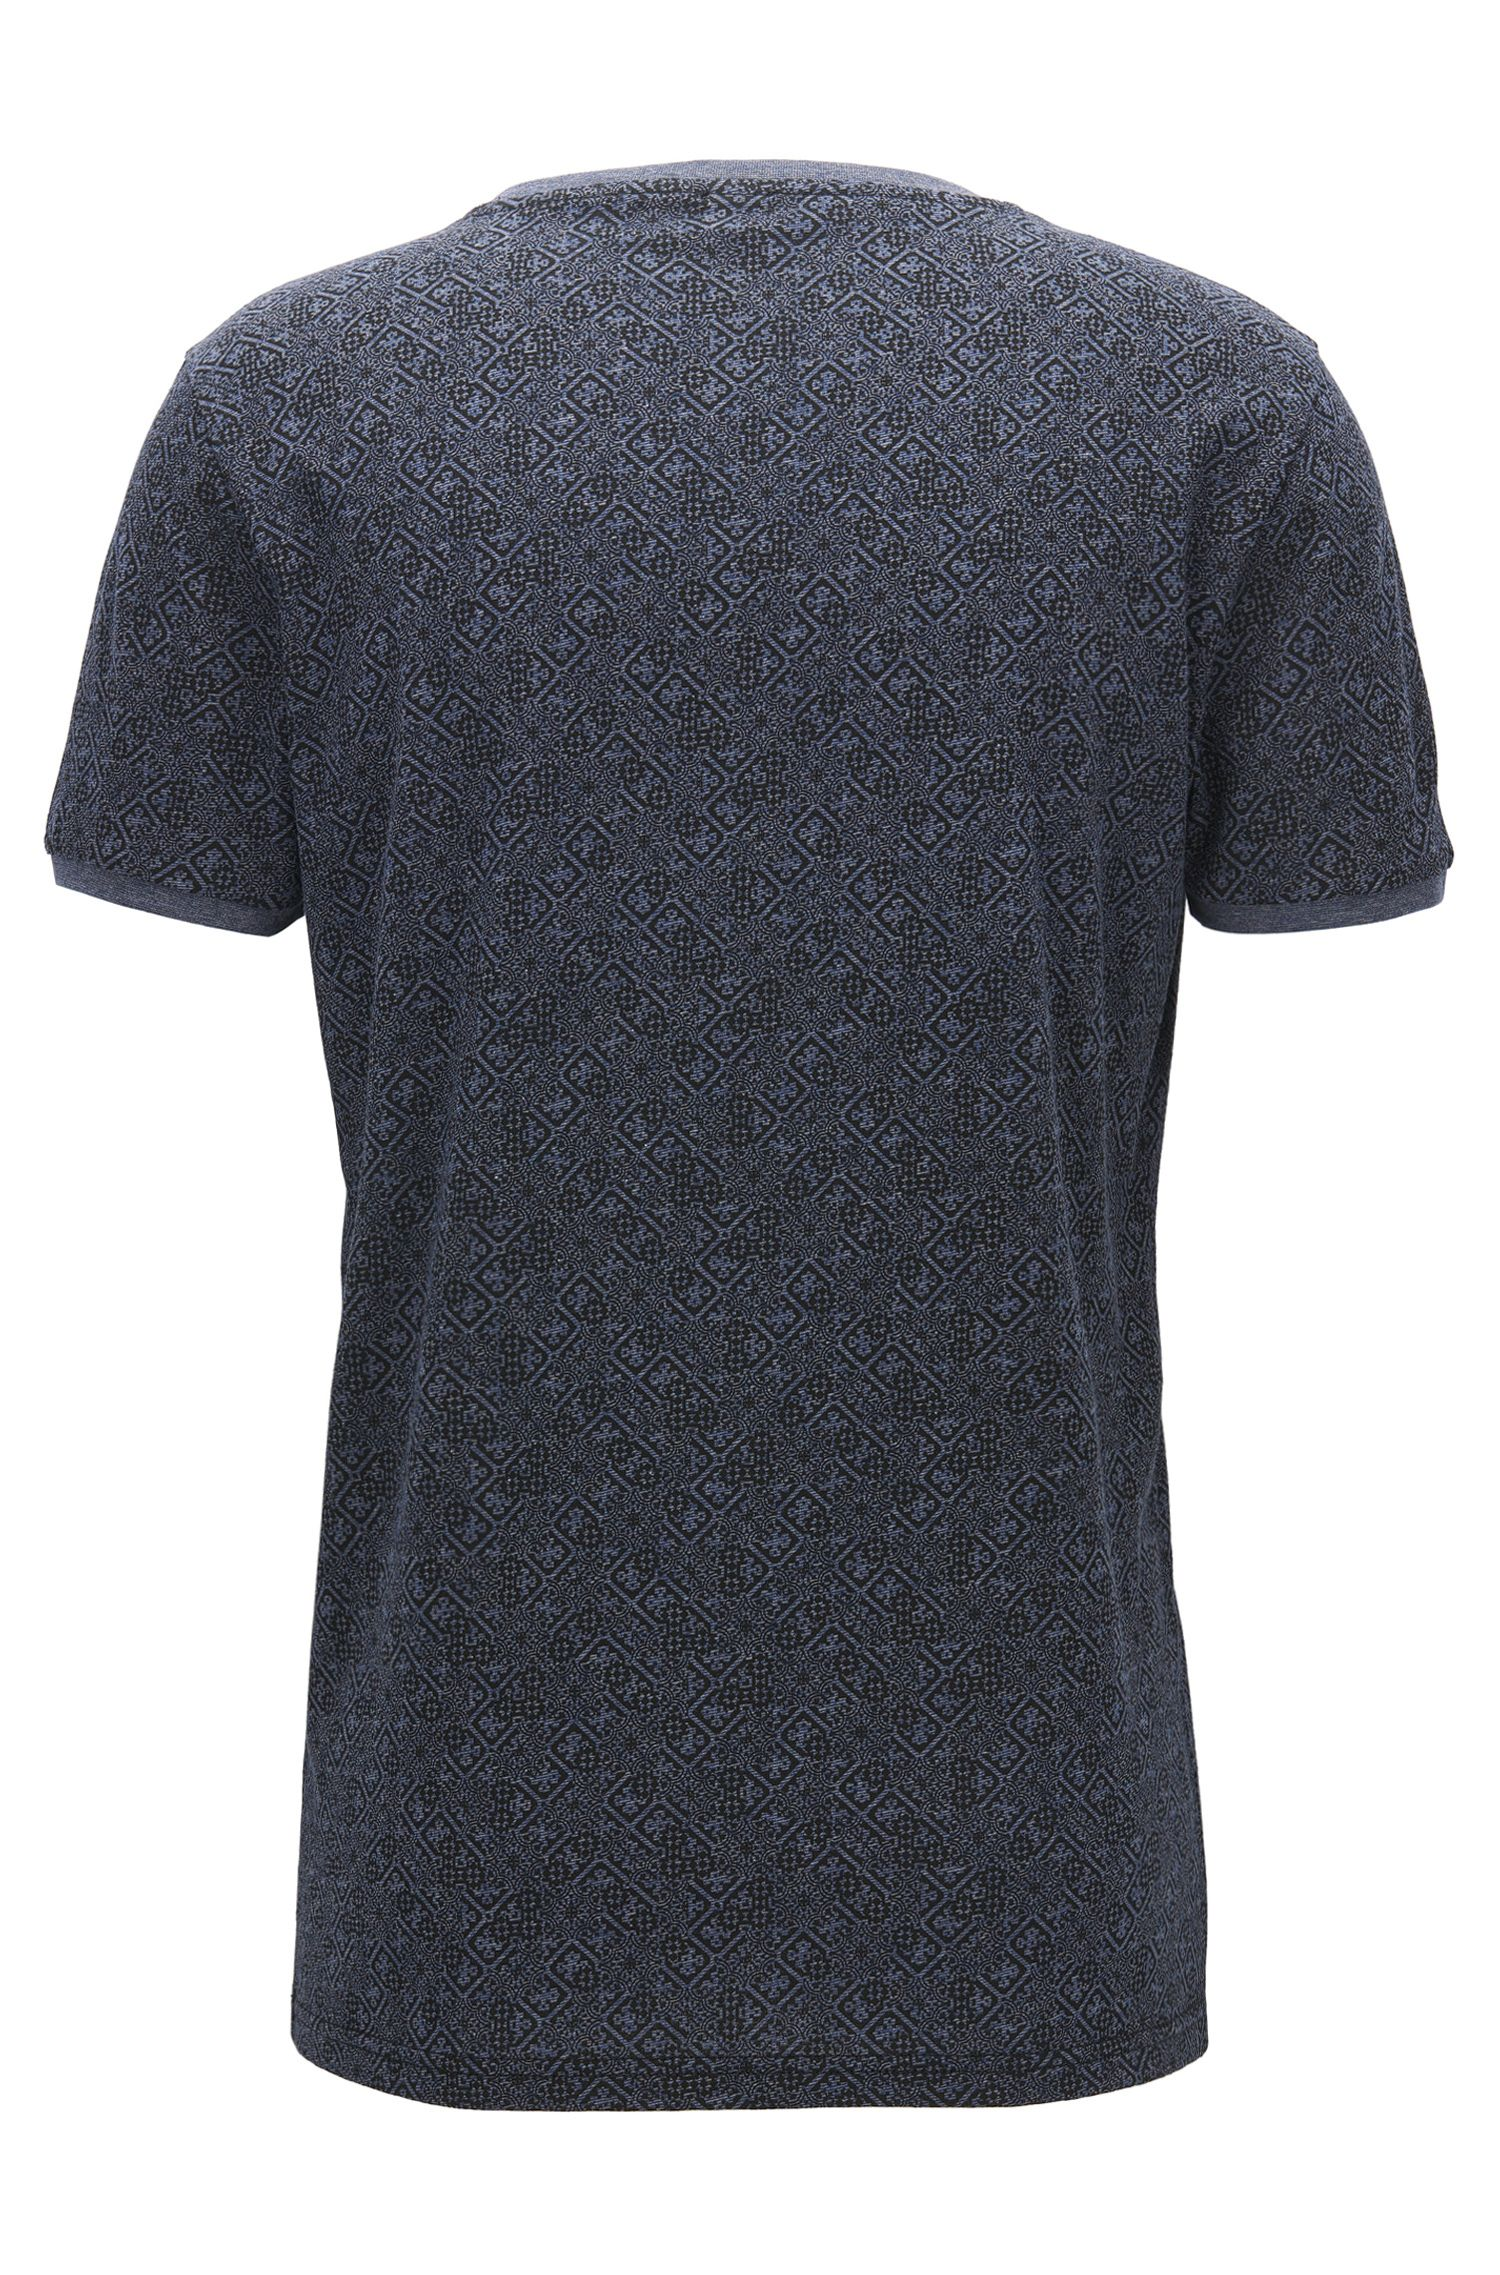 T-shirt regular fit in cotone stampato